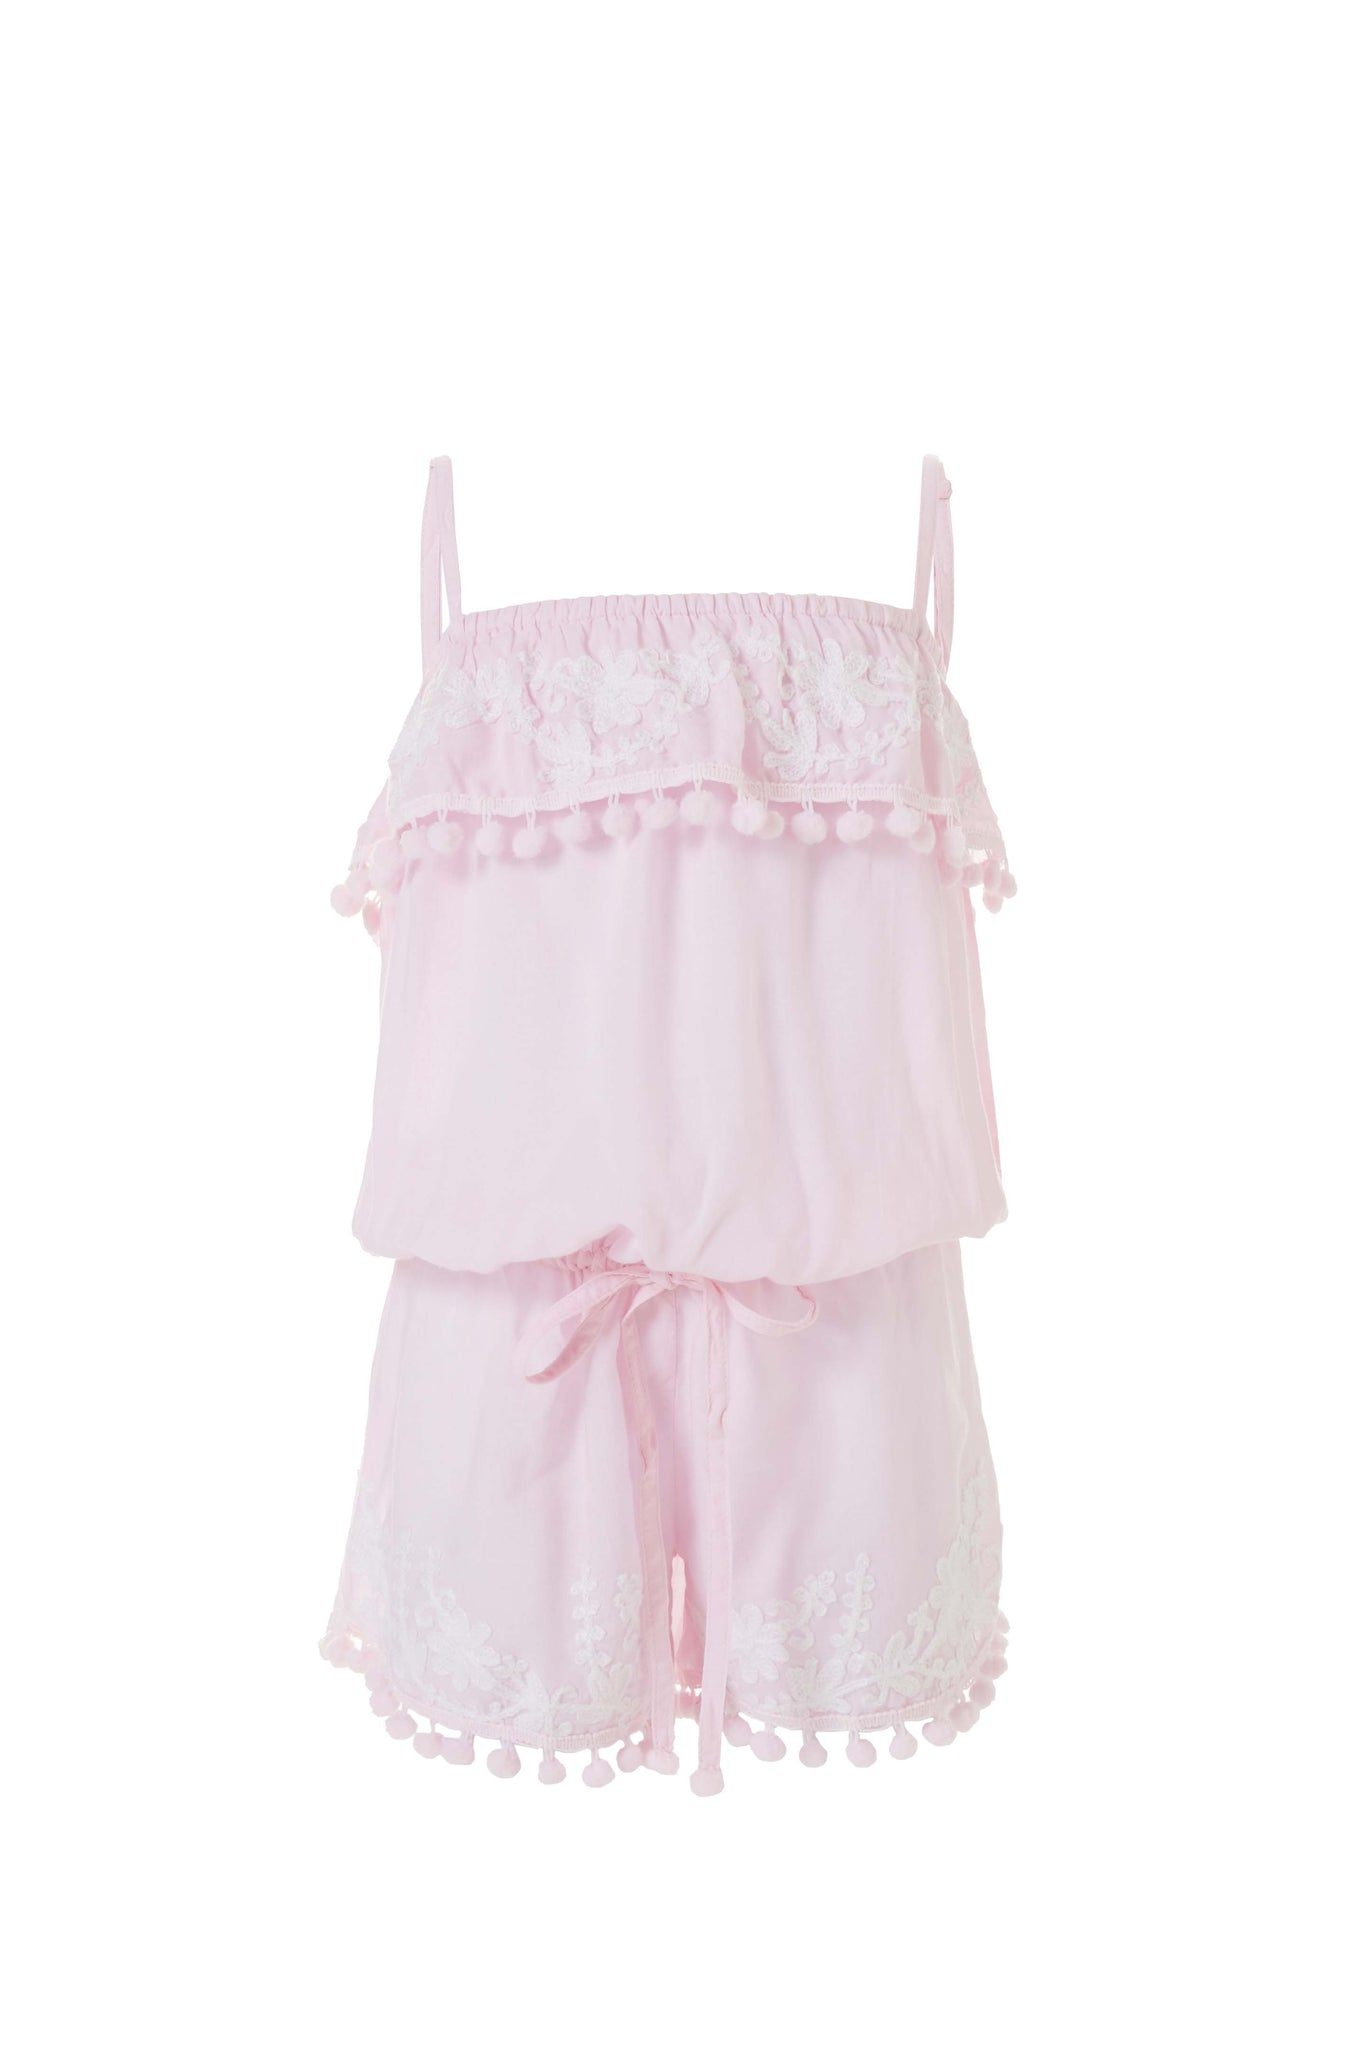 Baby Eisha Blush/White Embroidered Romper